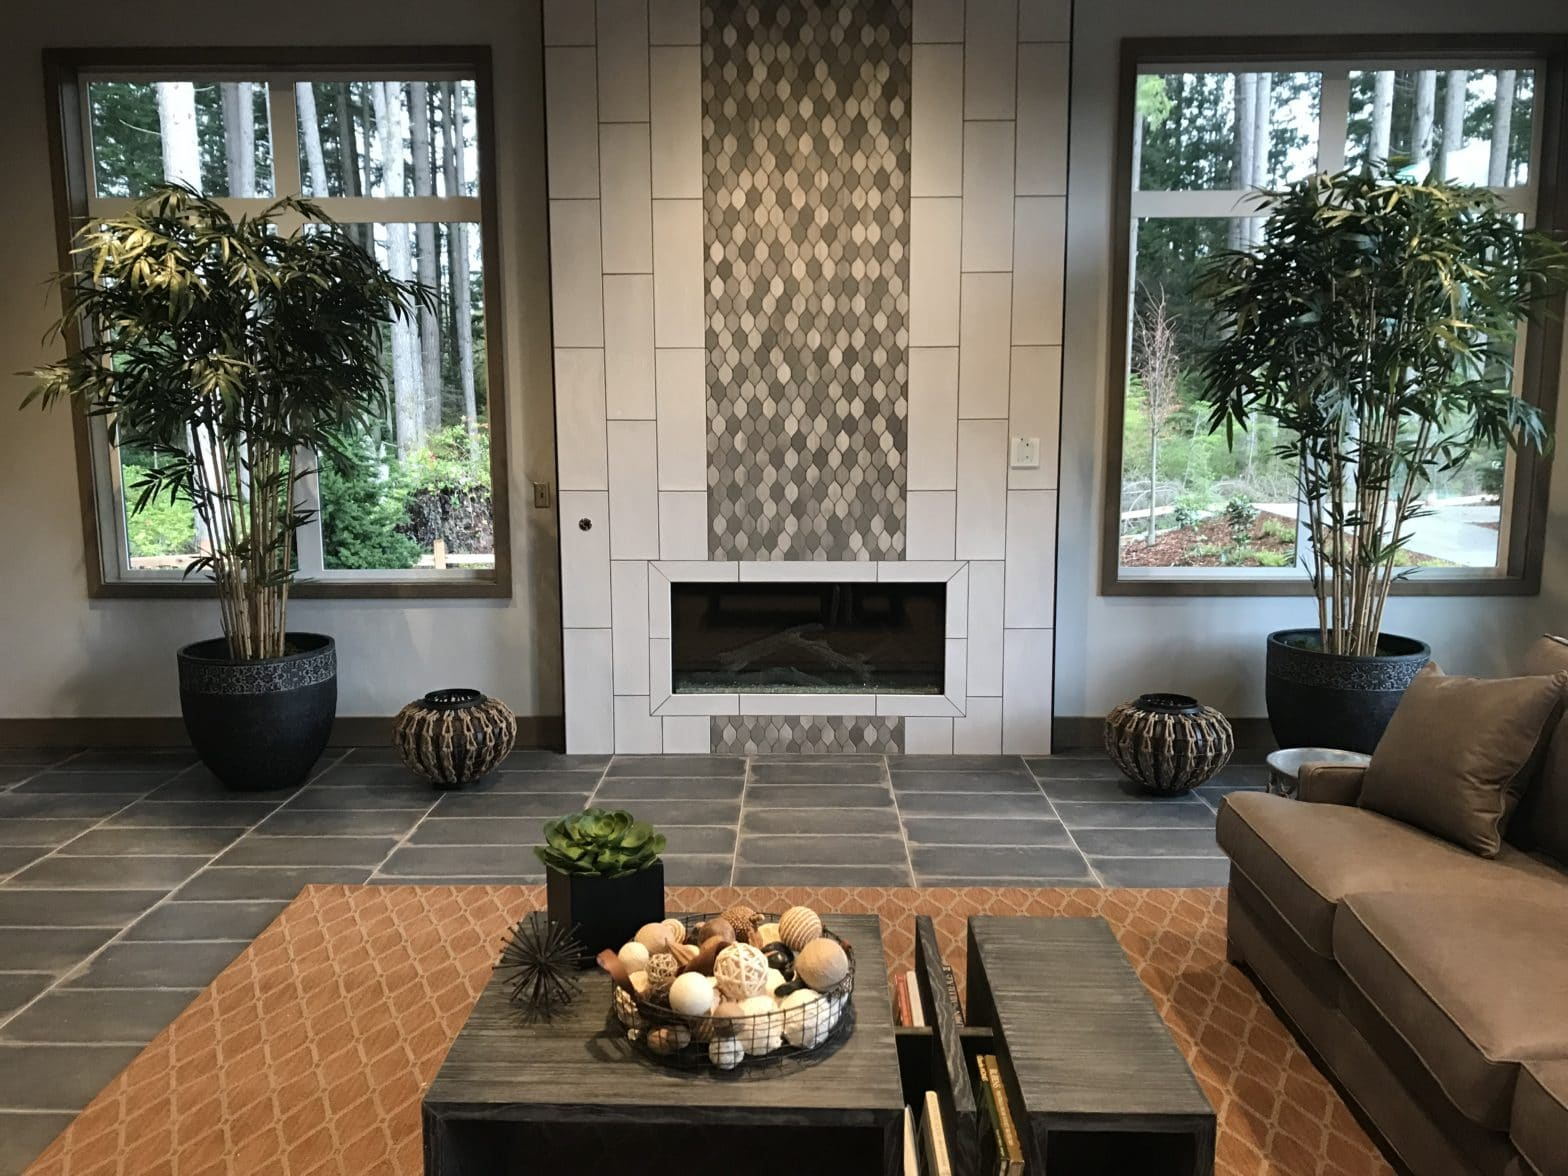 Custom Tiled Fireplace in Rec Center In Washington